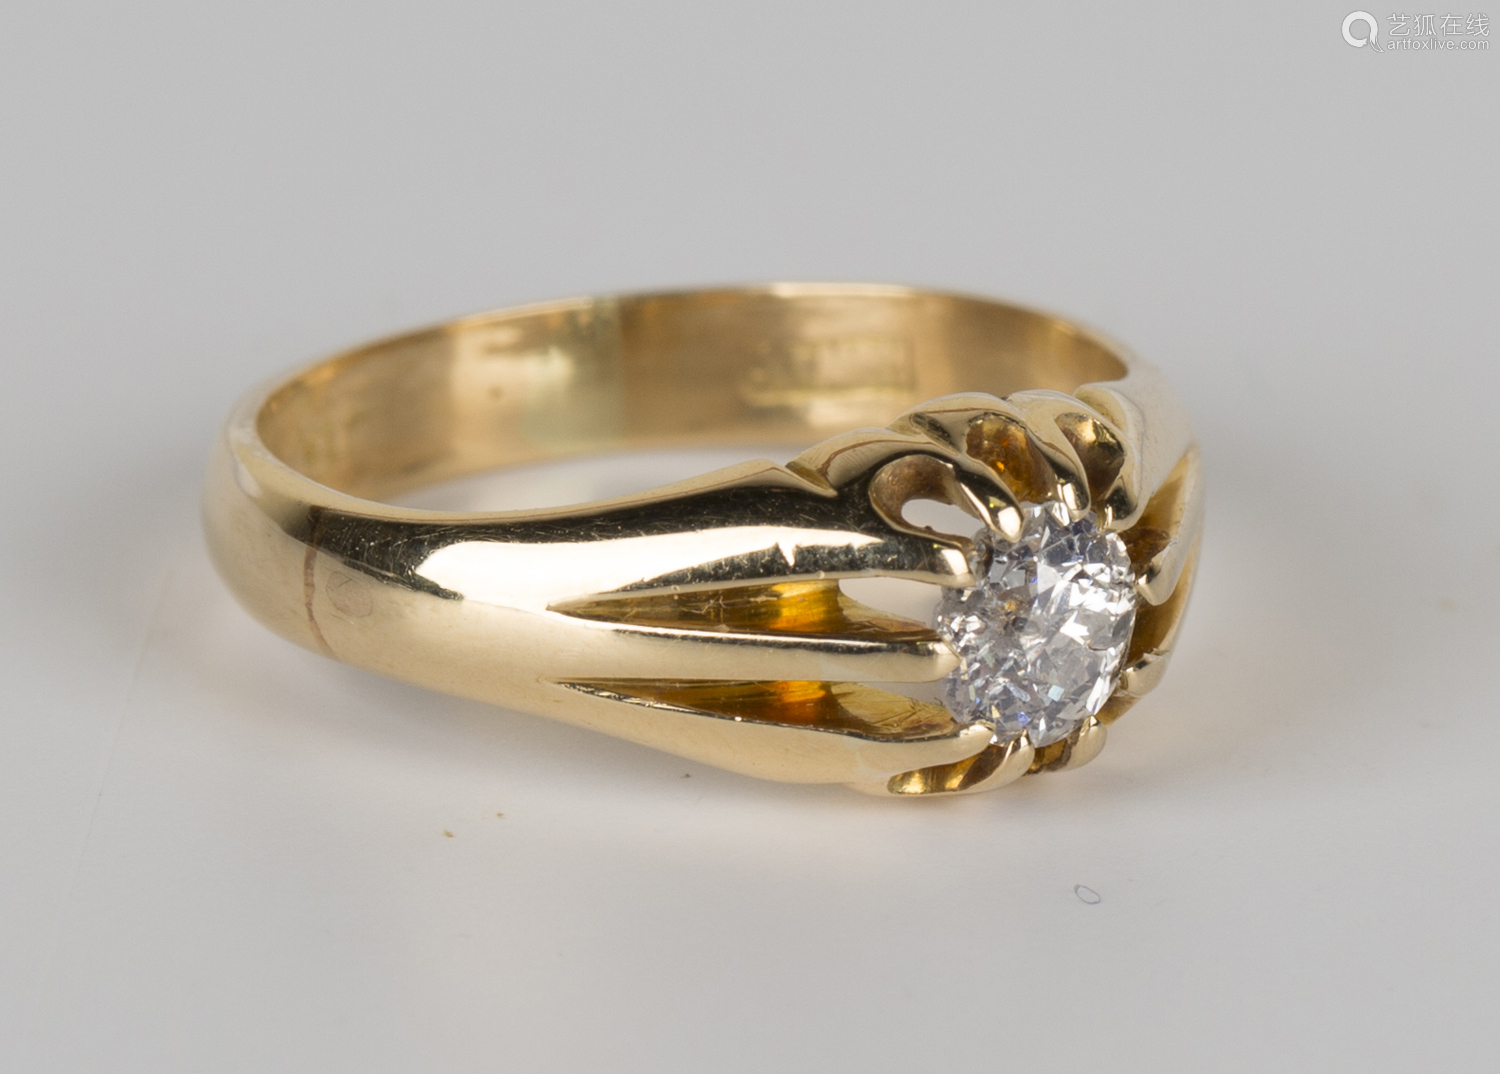 An 18ct gold and diamond single stone ring, claw set with a circular cut diamond, ring size approx